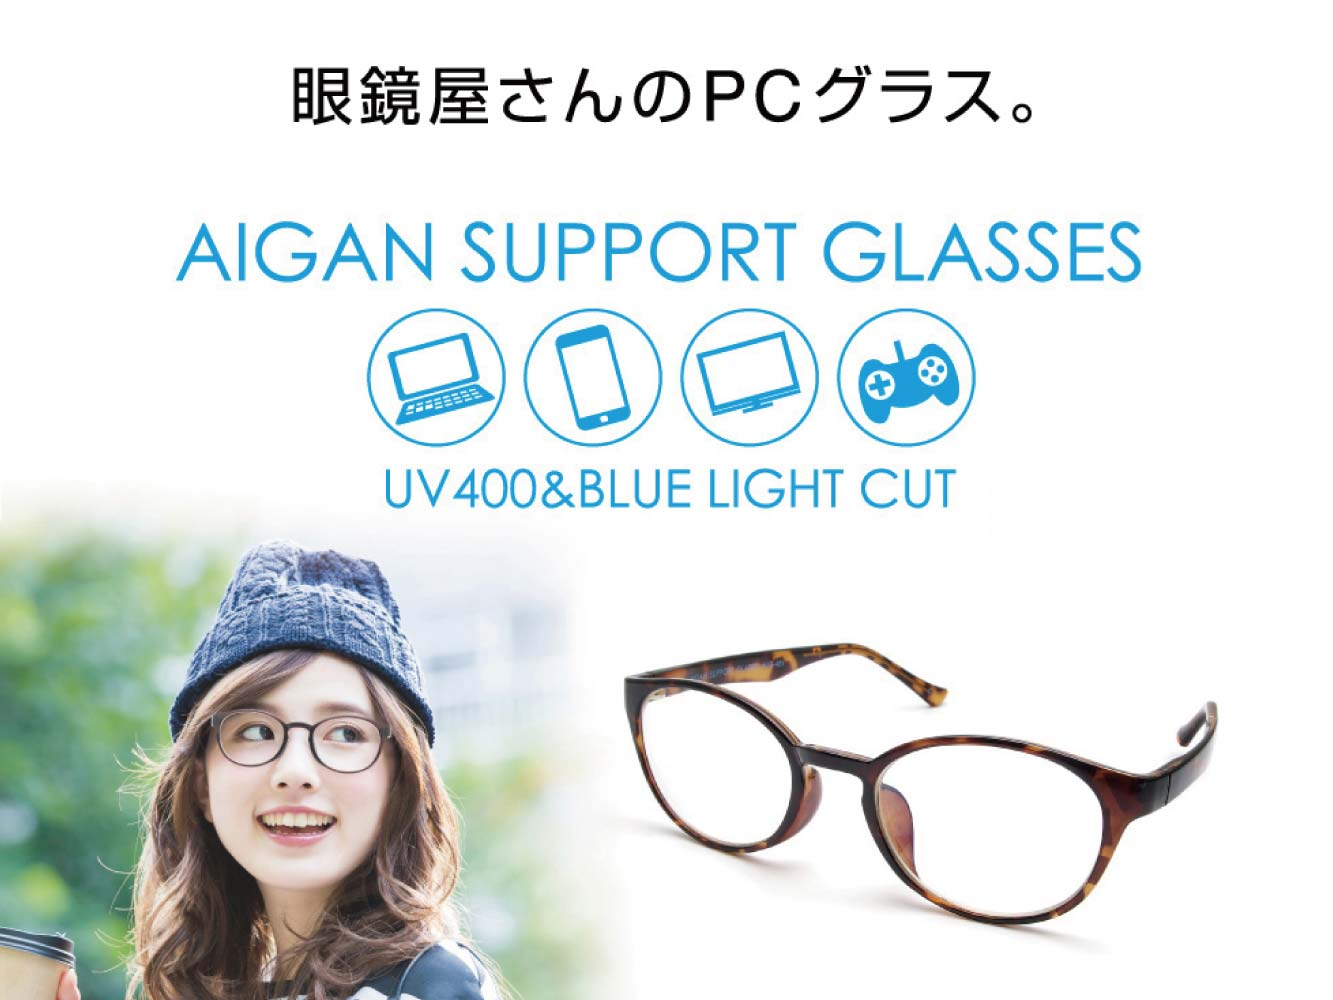 AIGAN SUPPORT GLASSES(PCグラス)